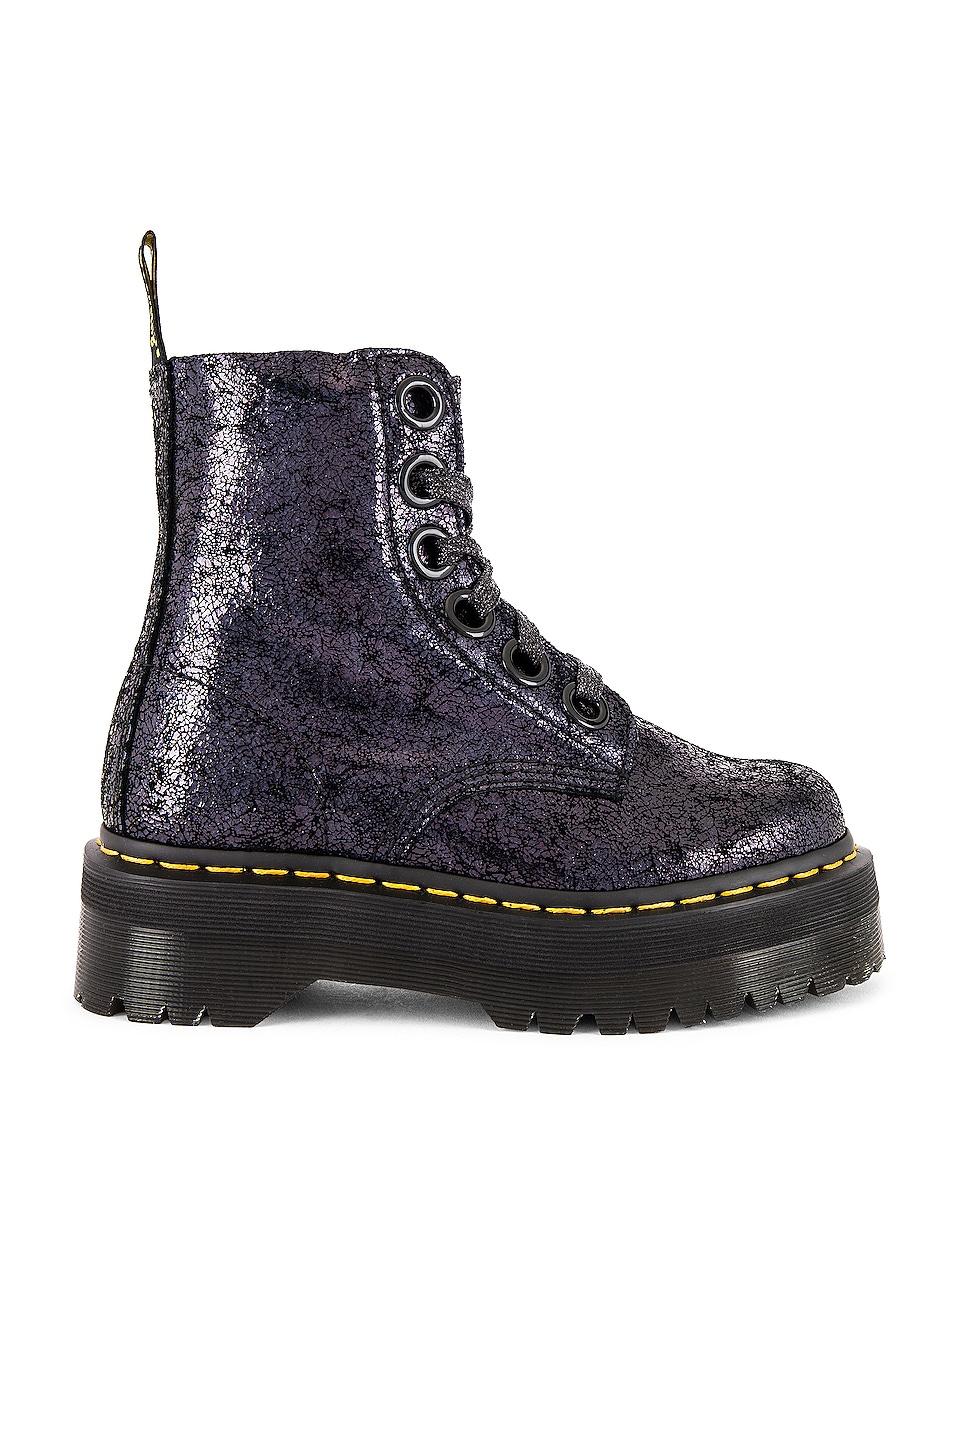 Dr. Martens Molly Boot in Black